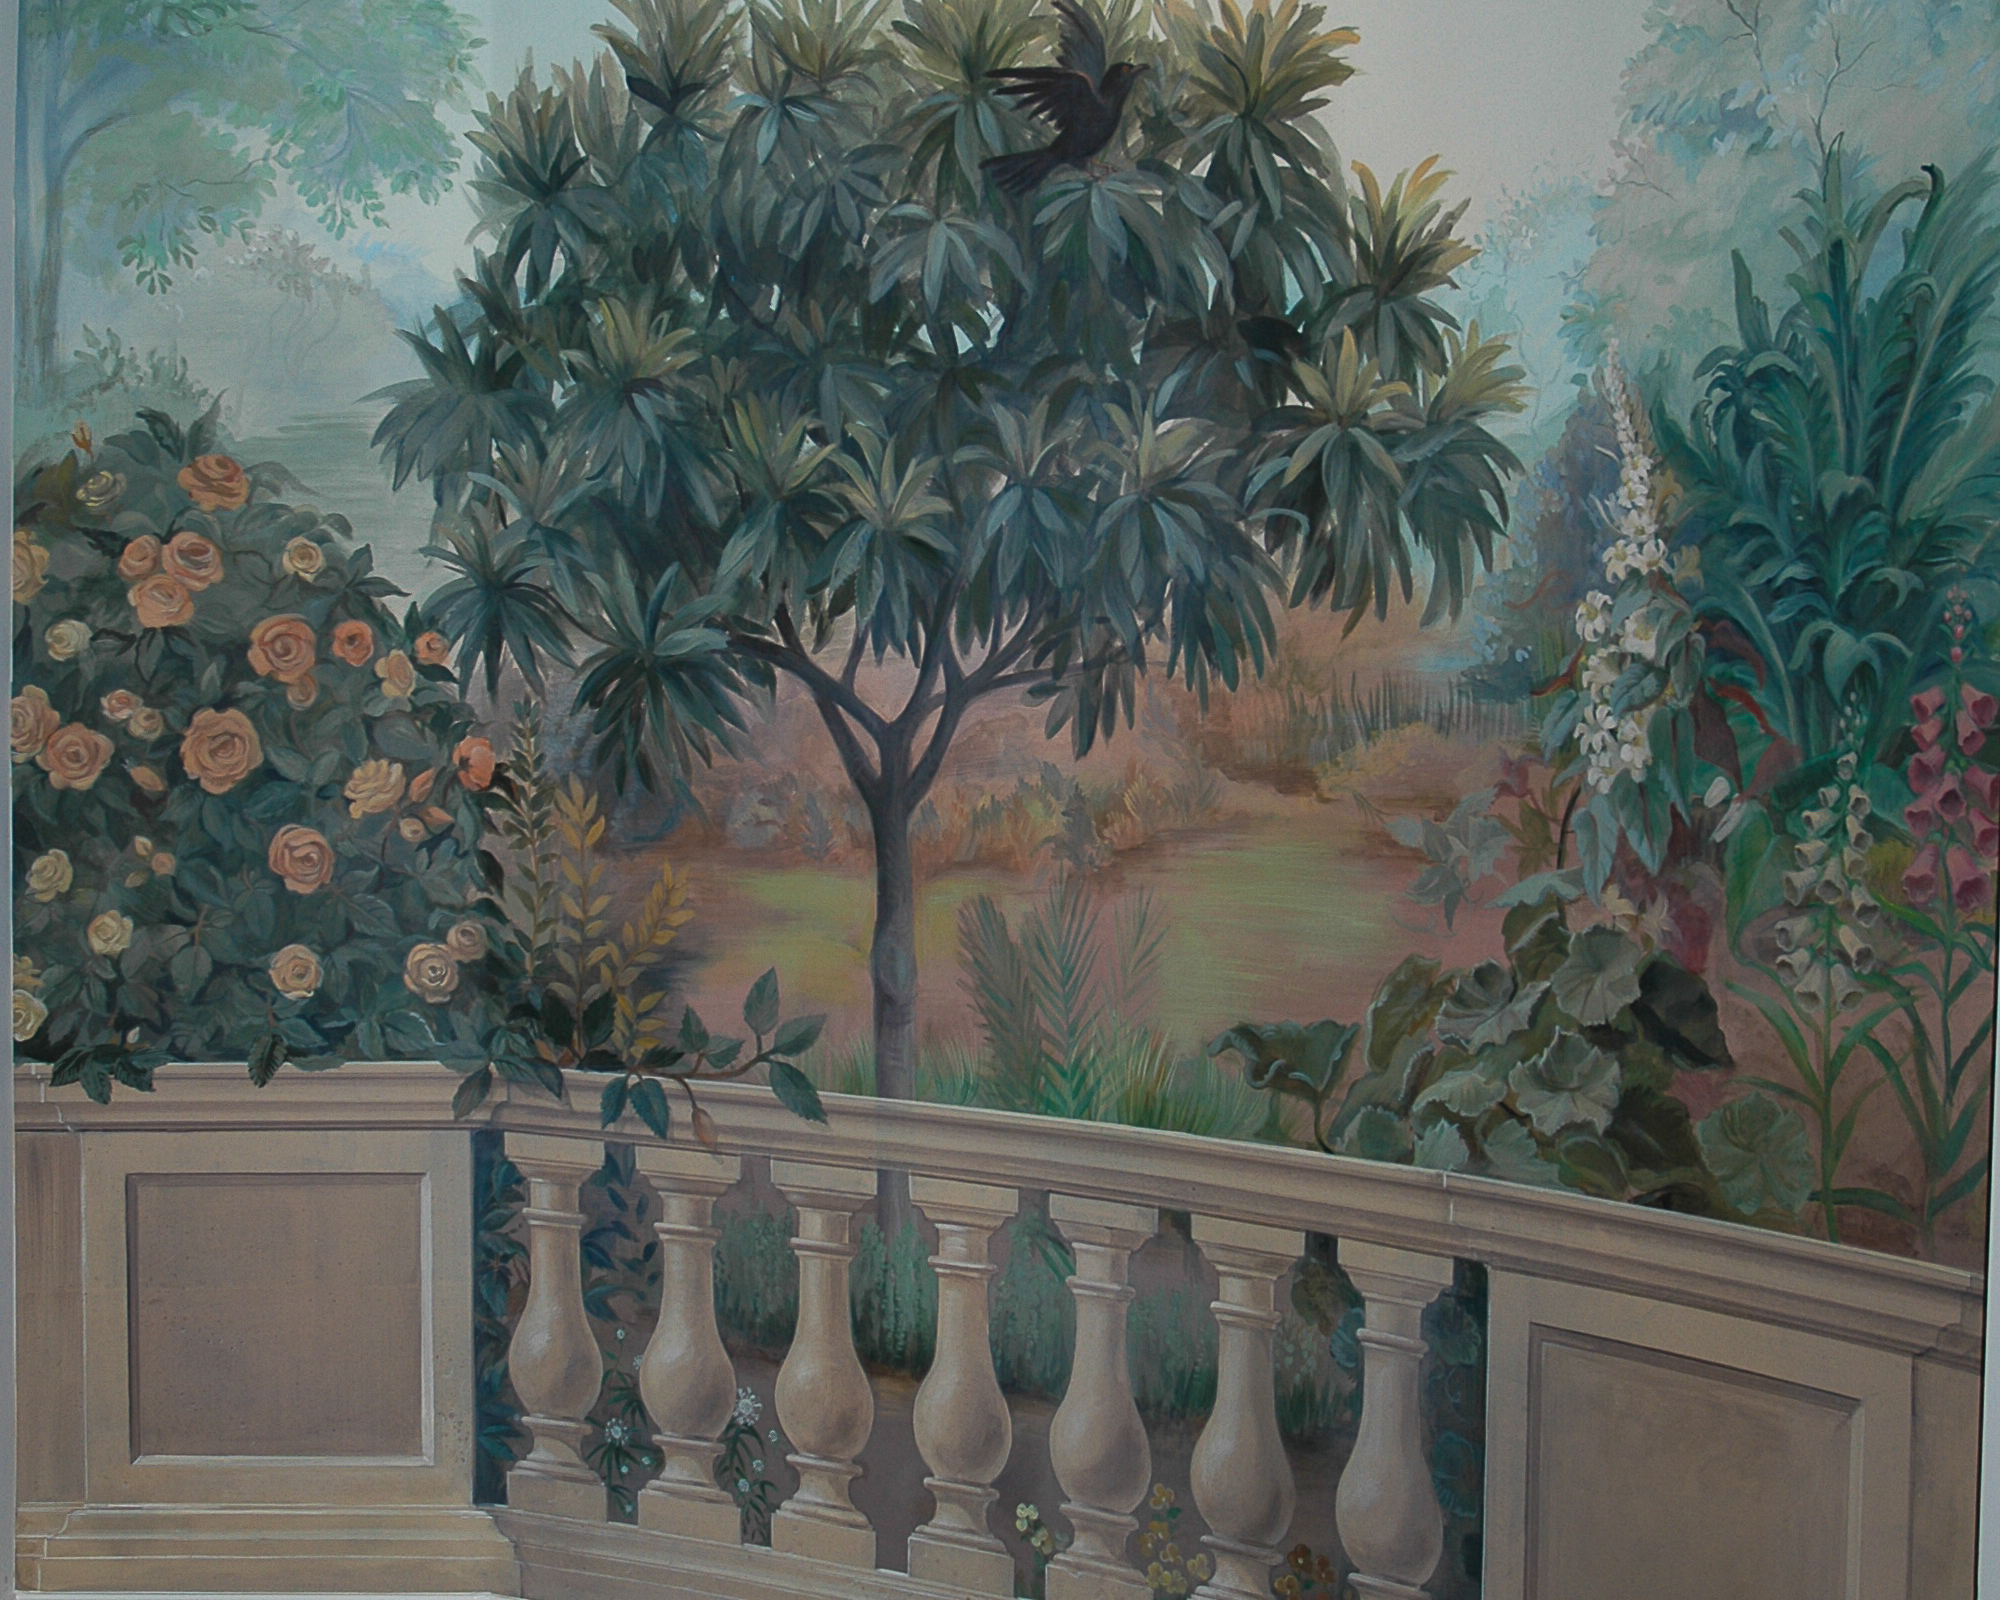 mural of tree with balustrade in foregroune